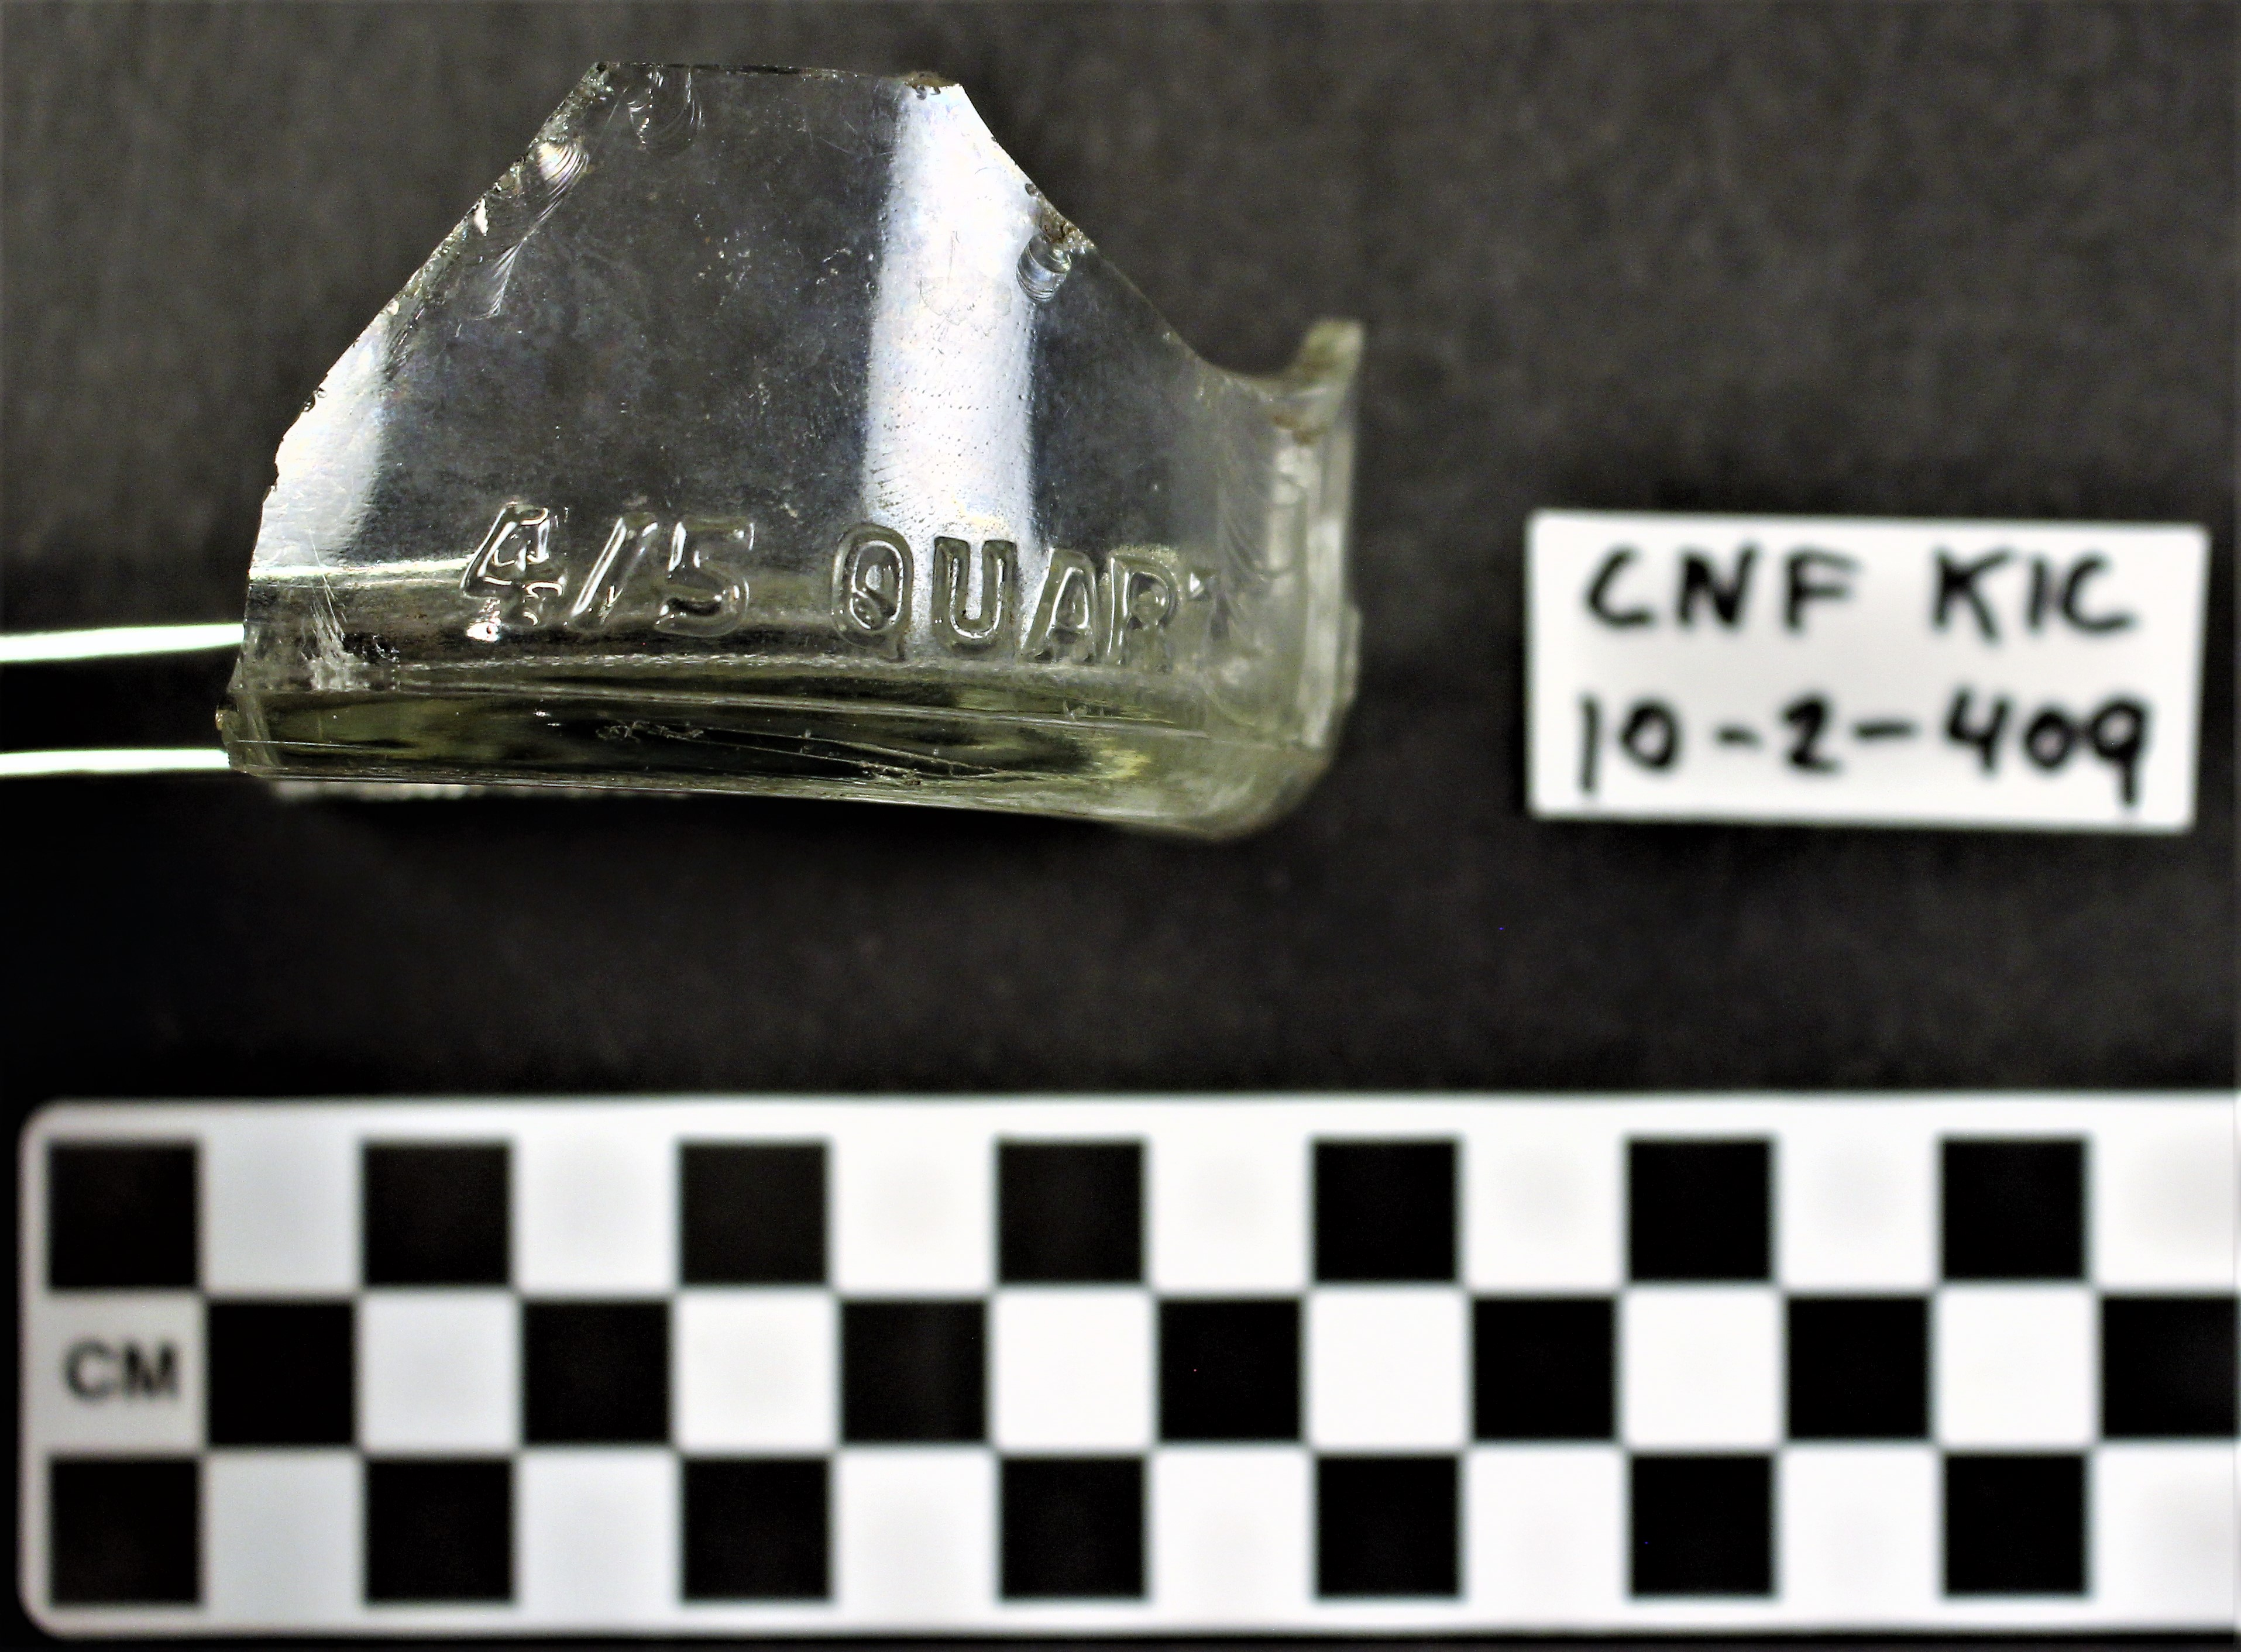 colorless glass bottle fragment